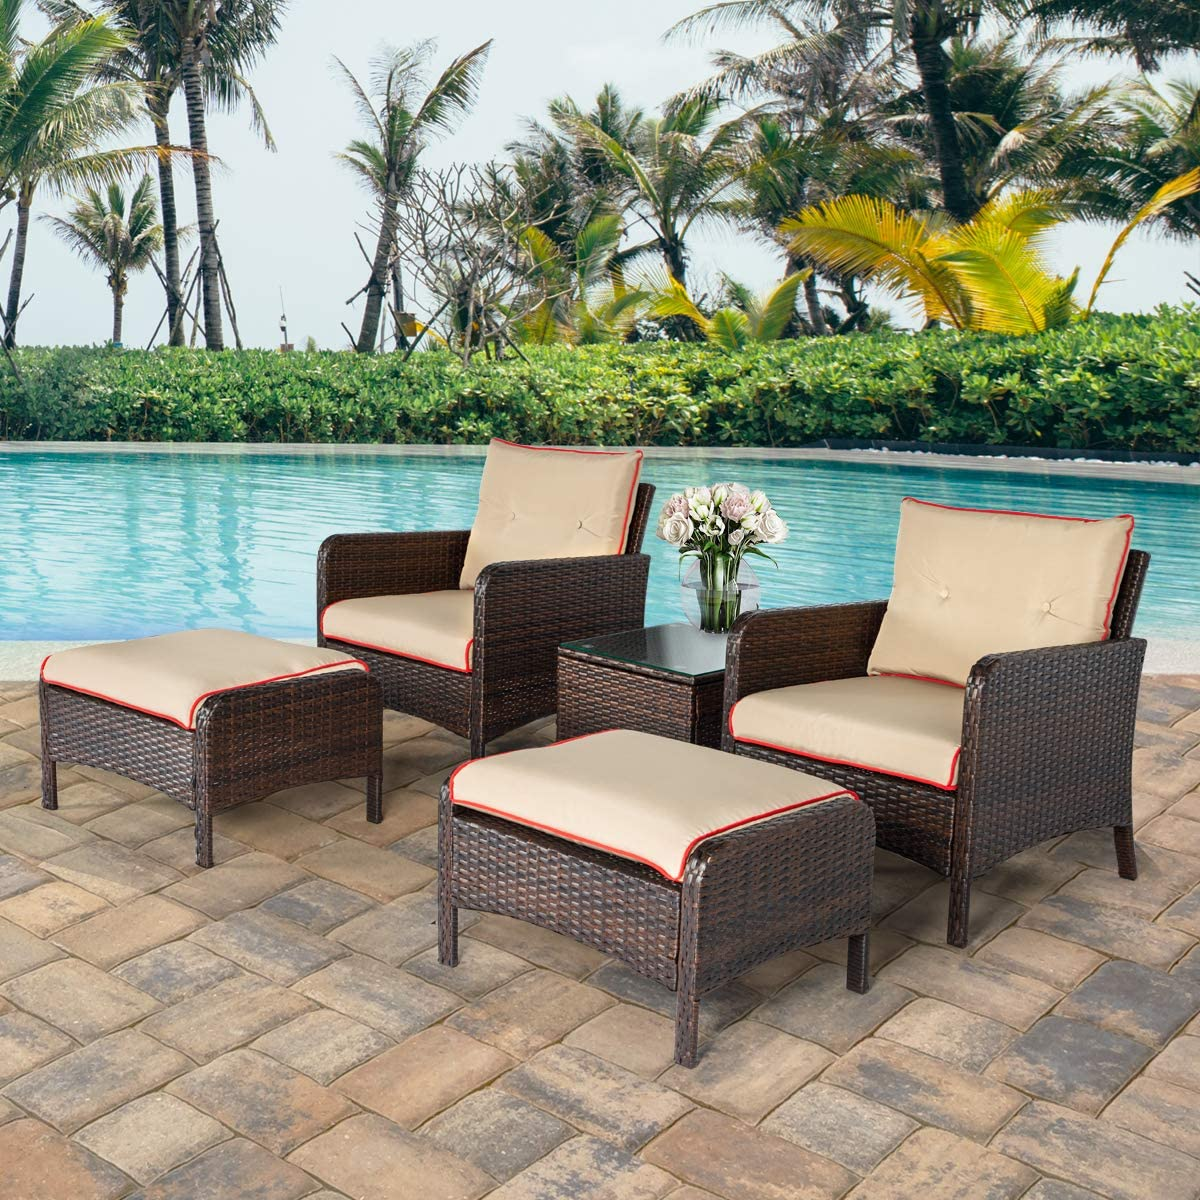 U-MAX 5 Pieces Patio Furniture Set Outdoor Chair and Ottoman Set with Cushions Side Table, PE Wicker Rattan Lawn Pool Balcony Backyard Conversation Lounge Set, Brown